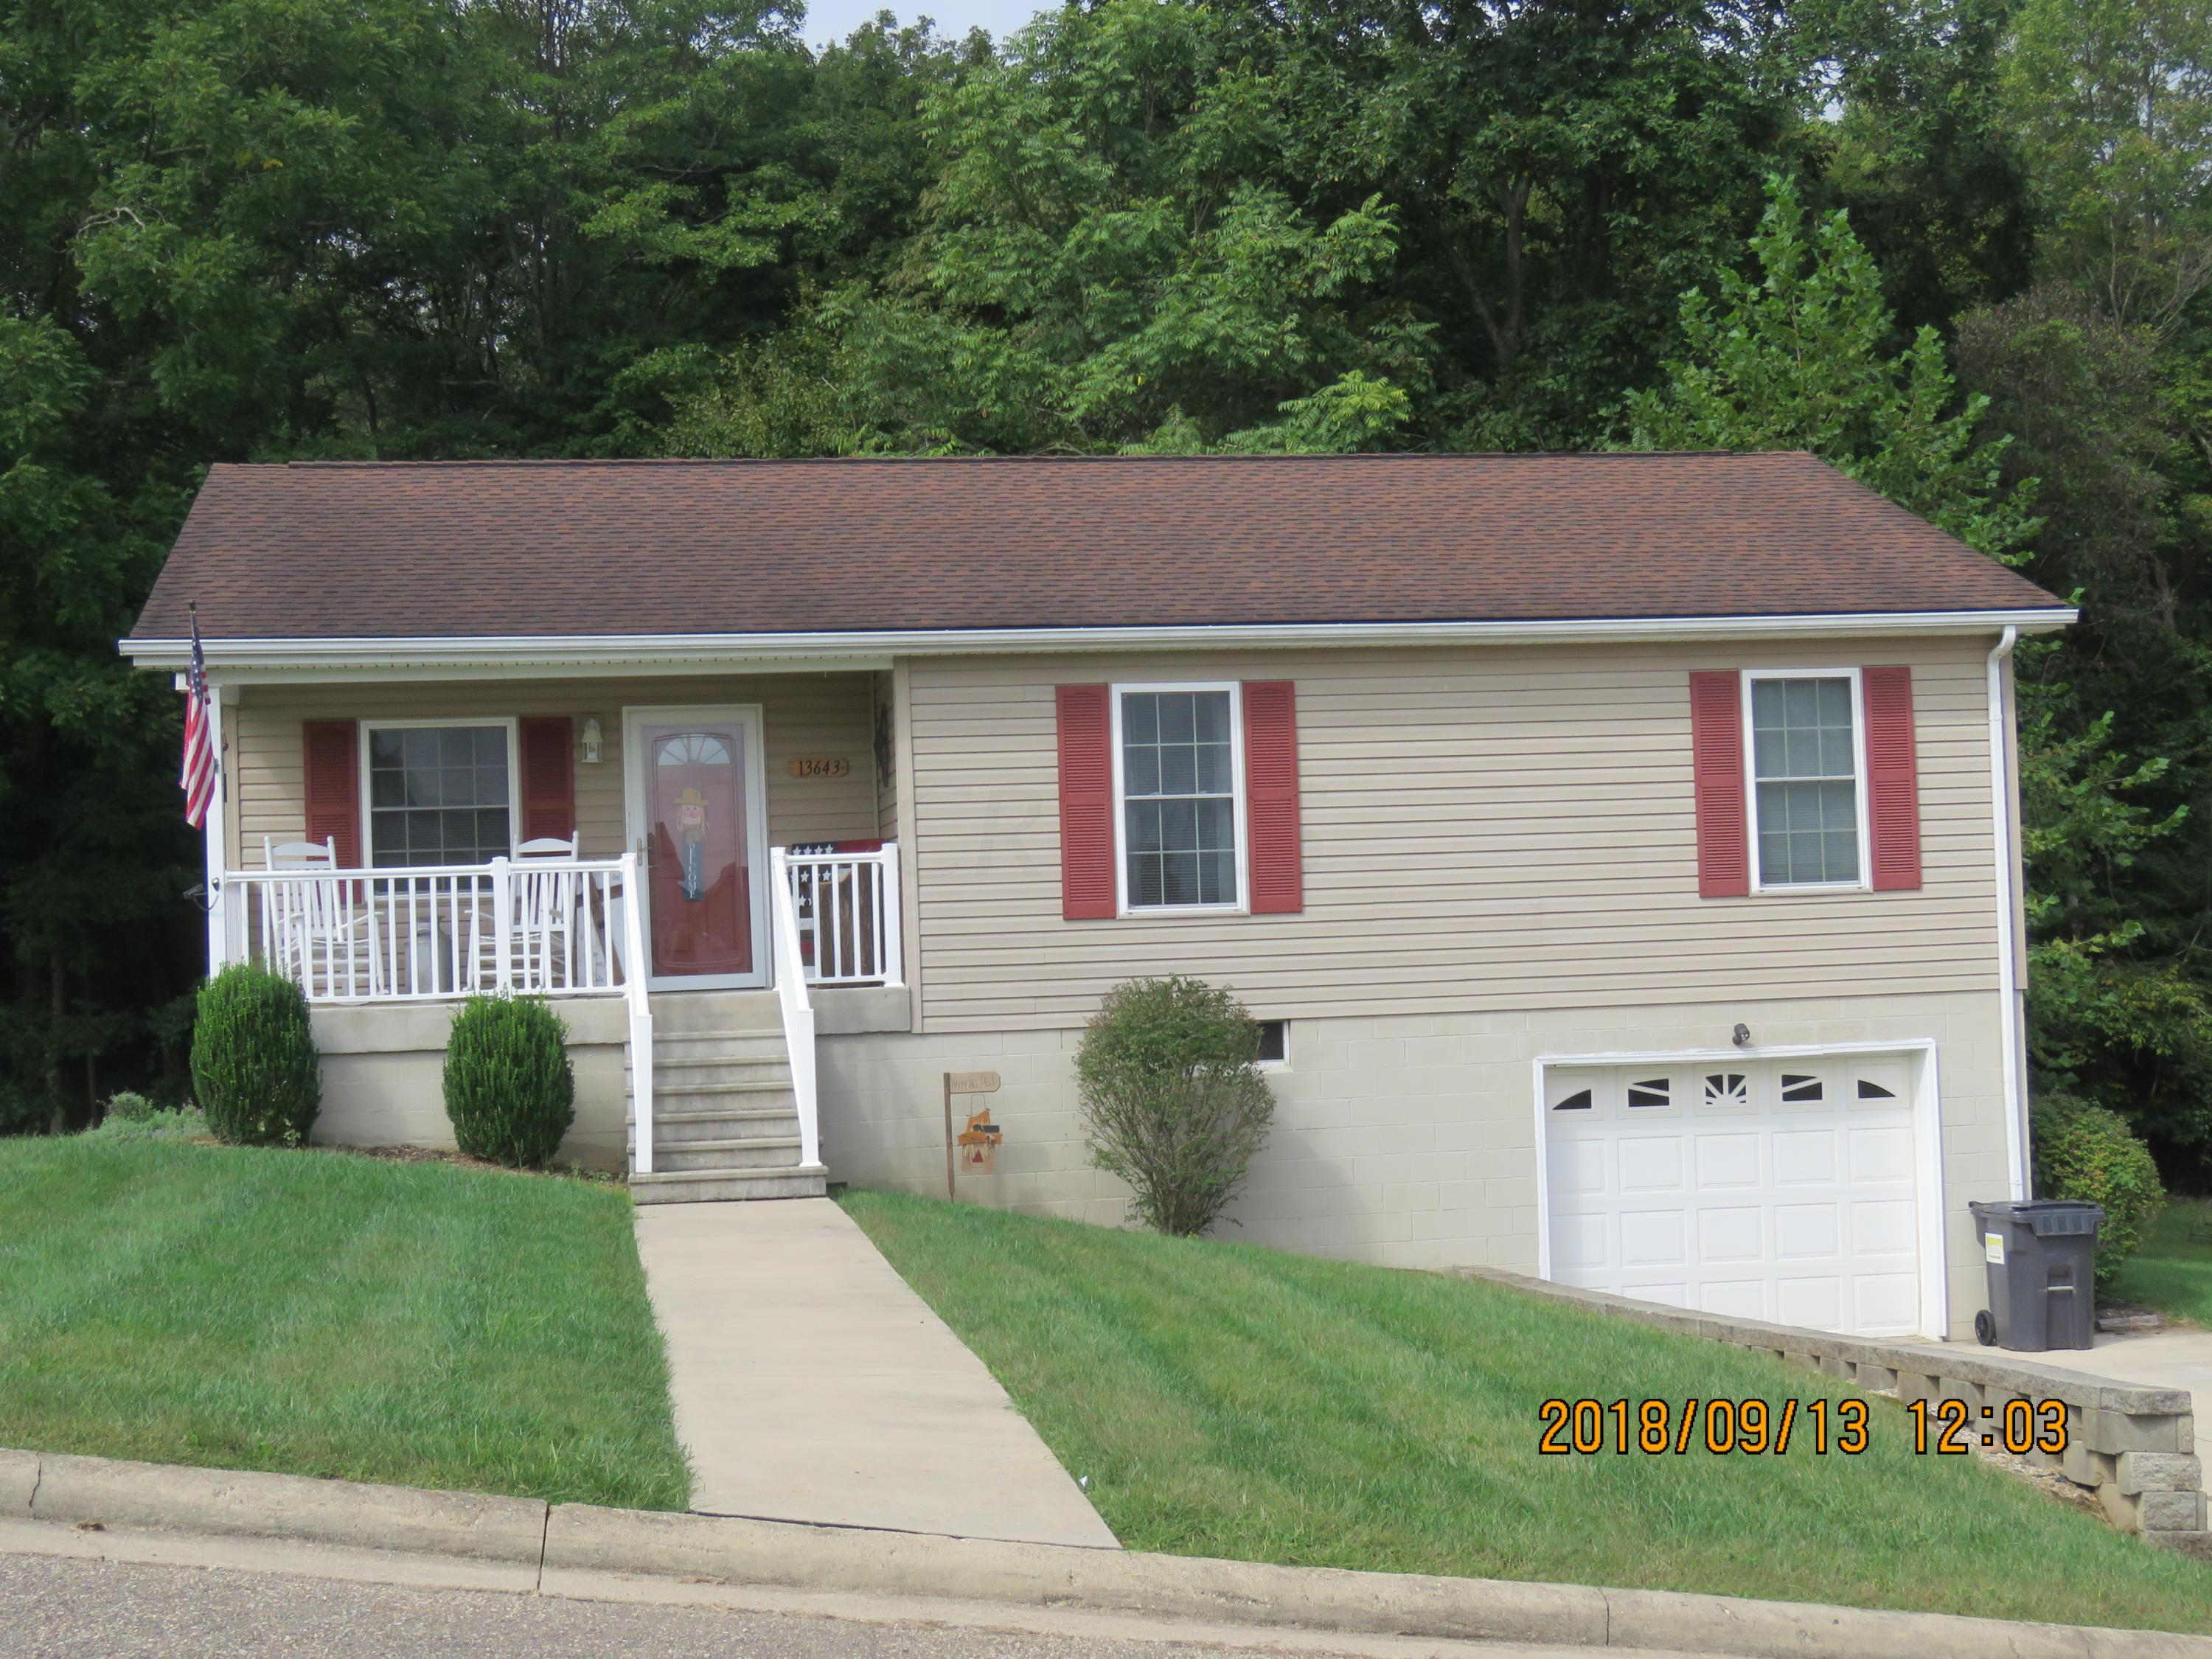 13643 Good Drive Logan Home Listings - Sandy Maniskas Realtors Hocking Hills and Logan Ohio Real Estate